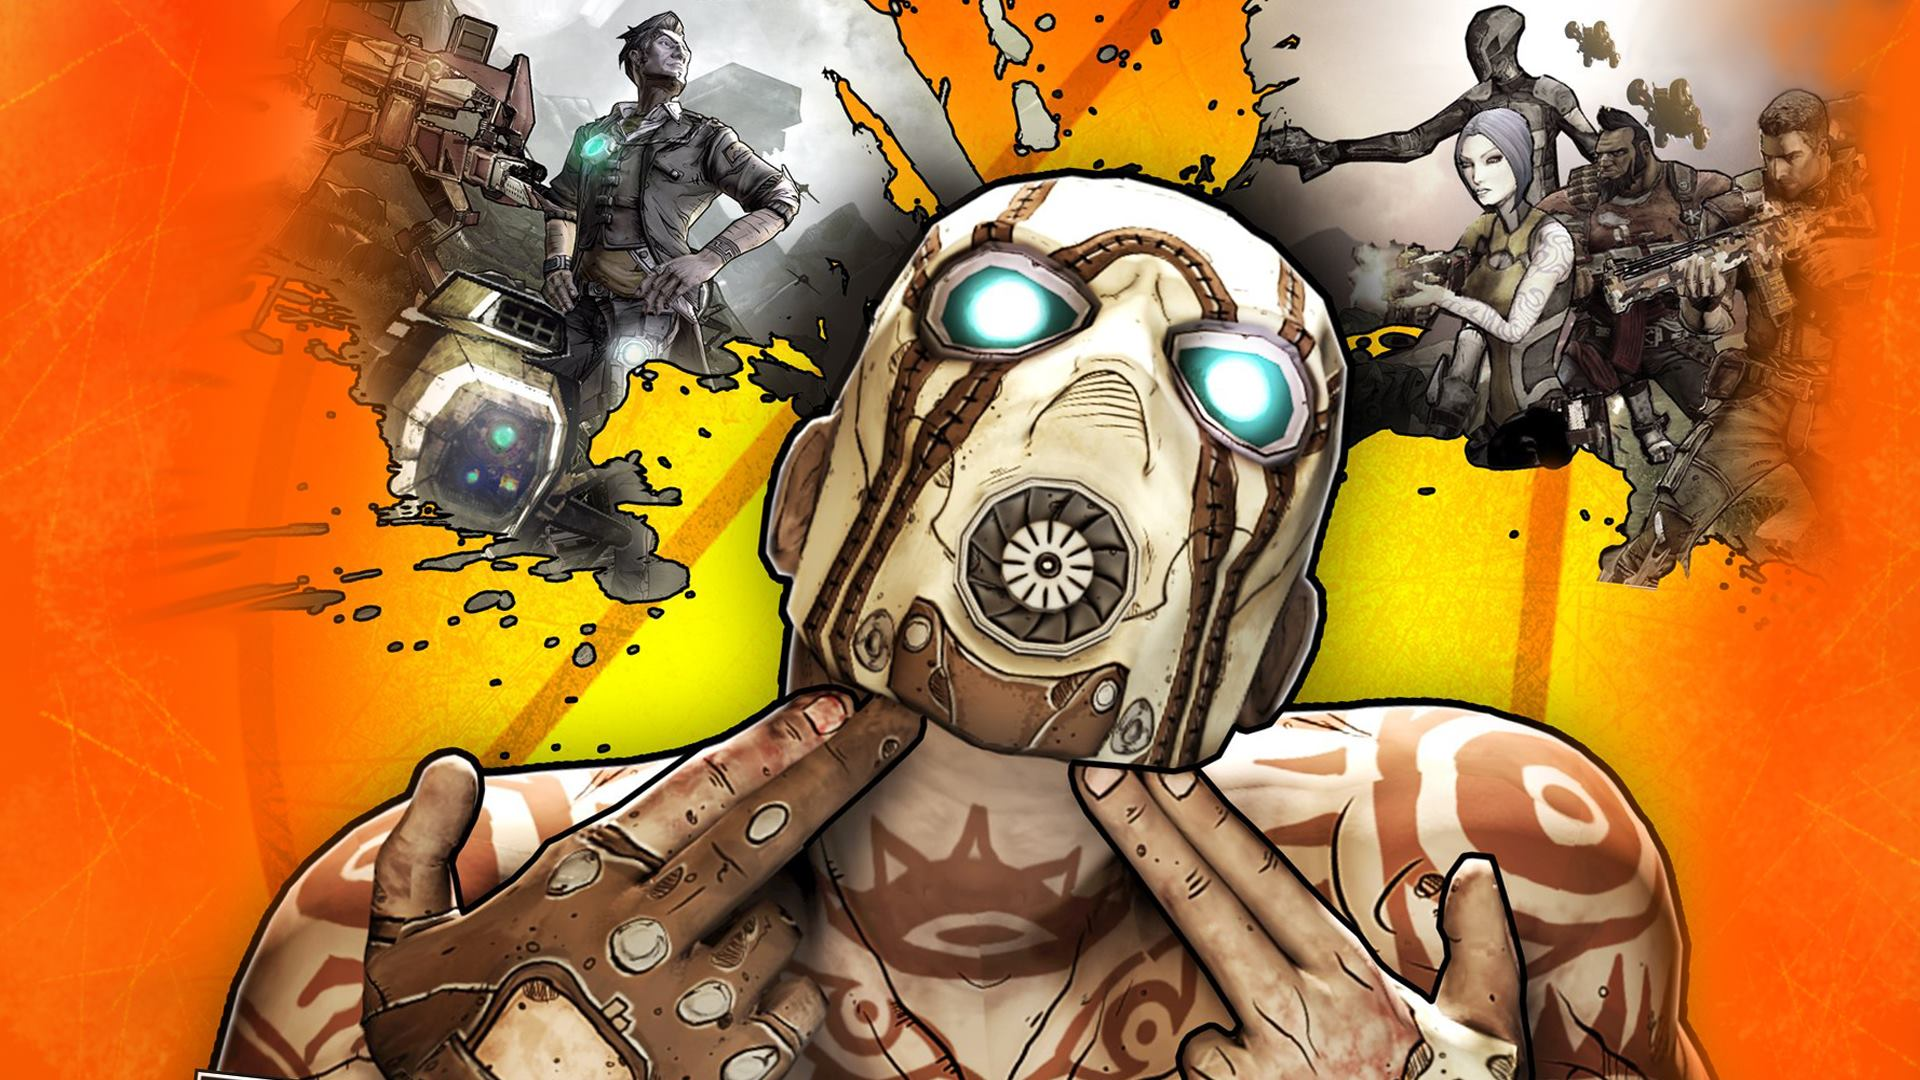 Borderlands HD Wallpapers 3